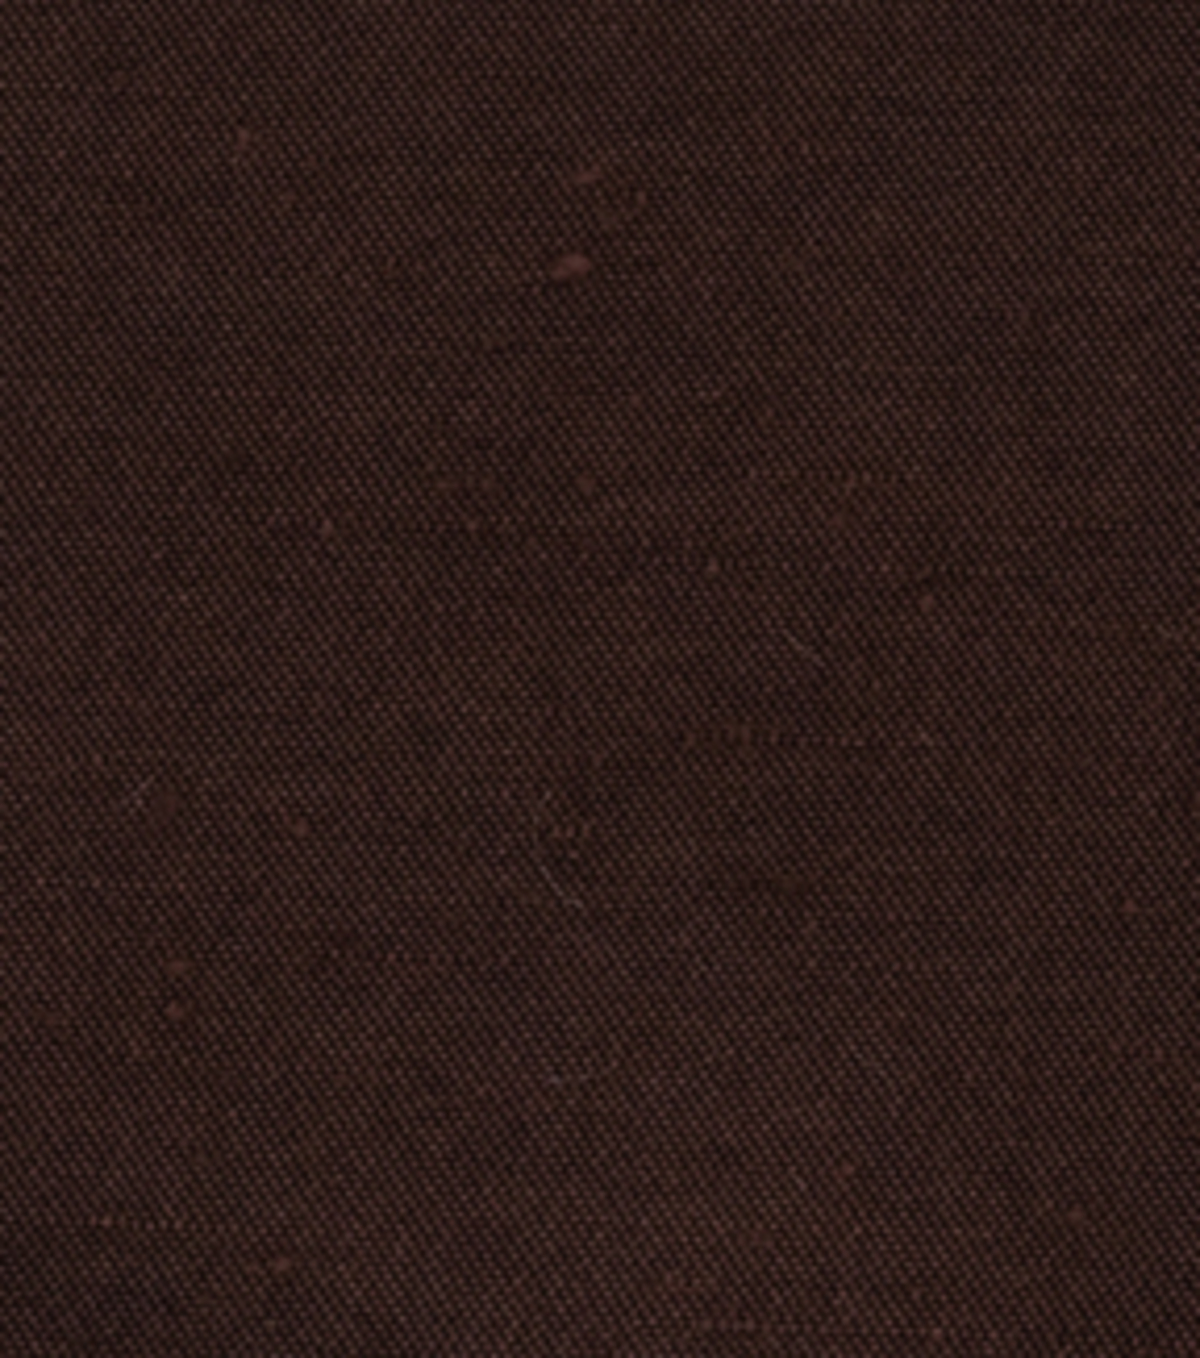 Home Decor 8\u0022x8\u0022 Fabric Swatch-Signature Series Antique Satin Dark Chocolate